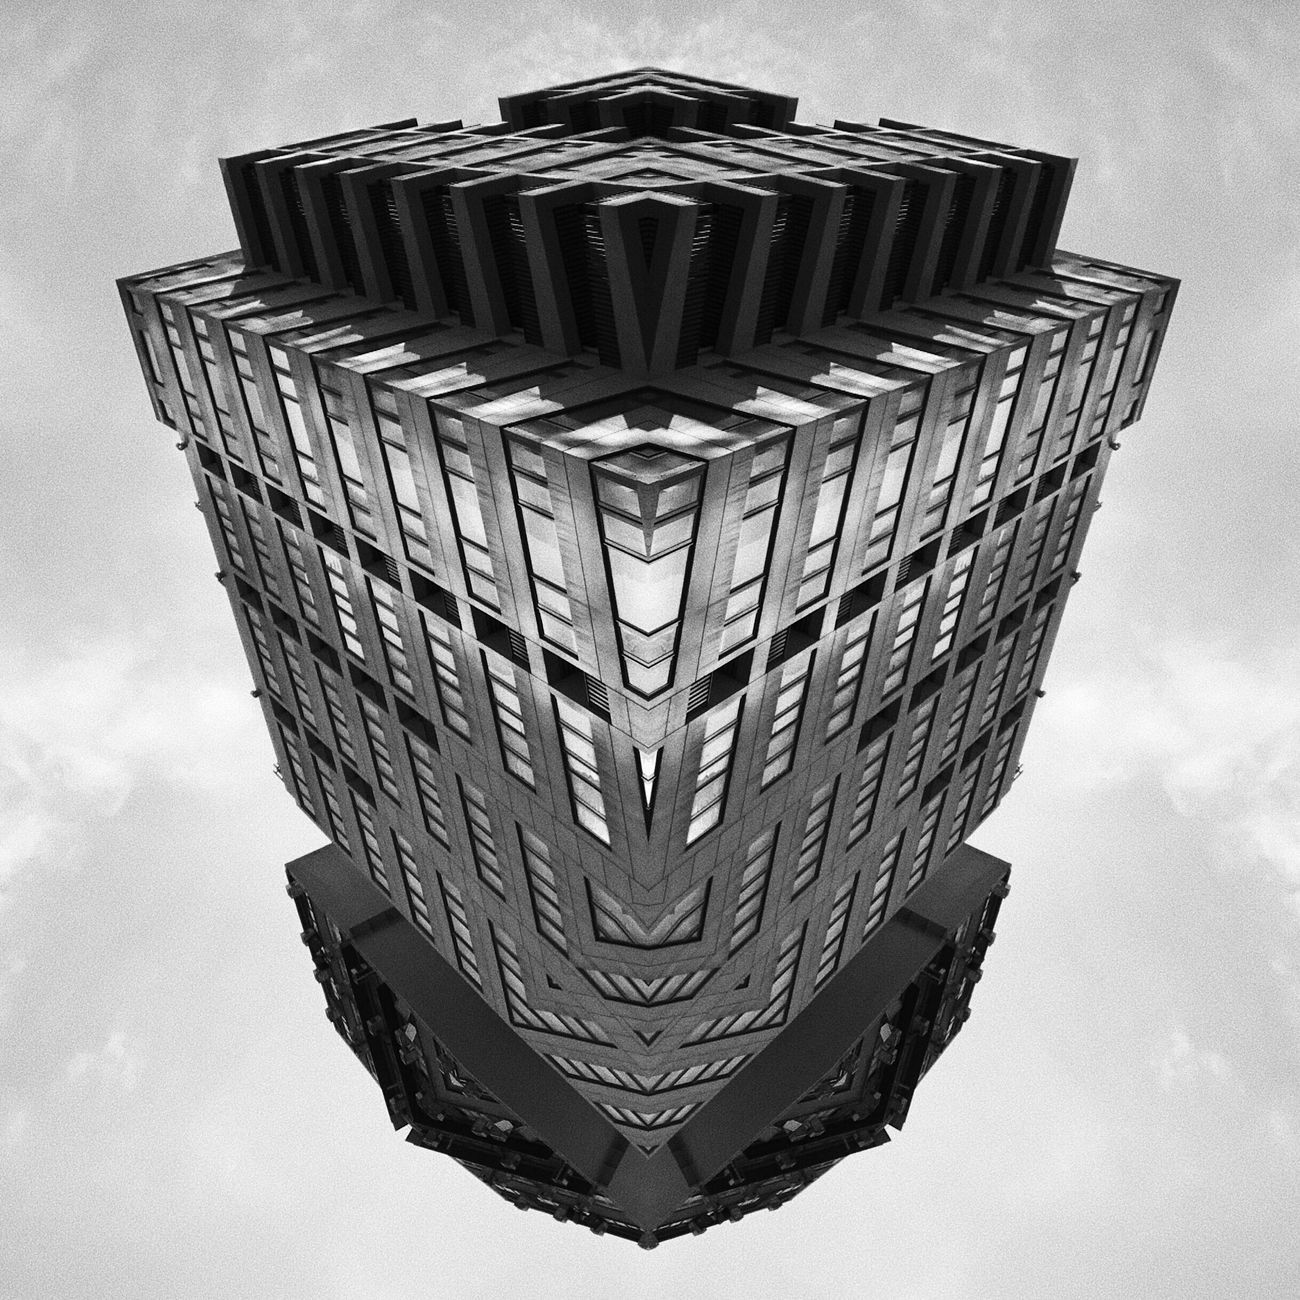 Landing Doubleexposure Double Exposure Symmetry Symmetryporn Symmetrical Art Artistic Abstract Abstract Art Abstractarchitecture Rearchitseries EyeEm Best Shots - Black + White Blackandwhite Photography Black And White Blackandwhite Black & White Monochromatic Monochrome